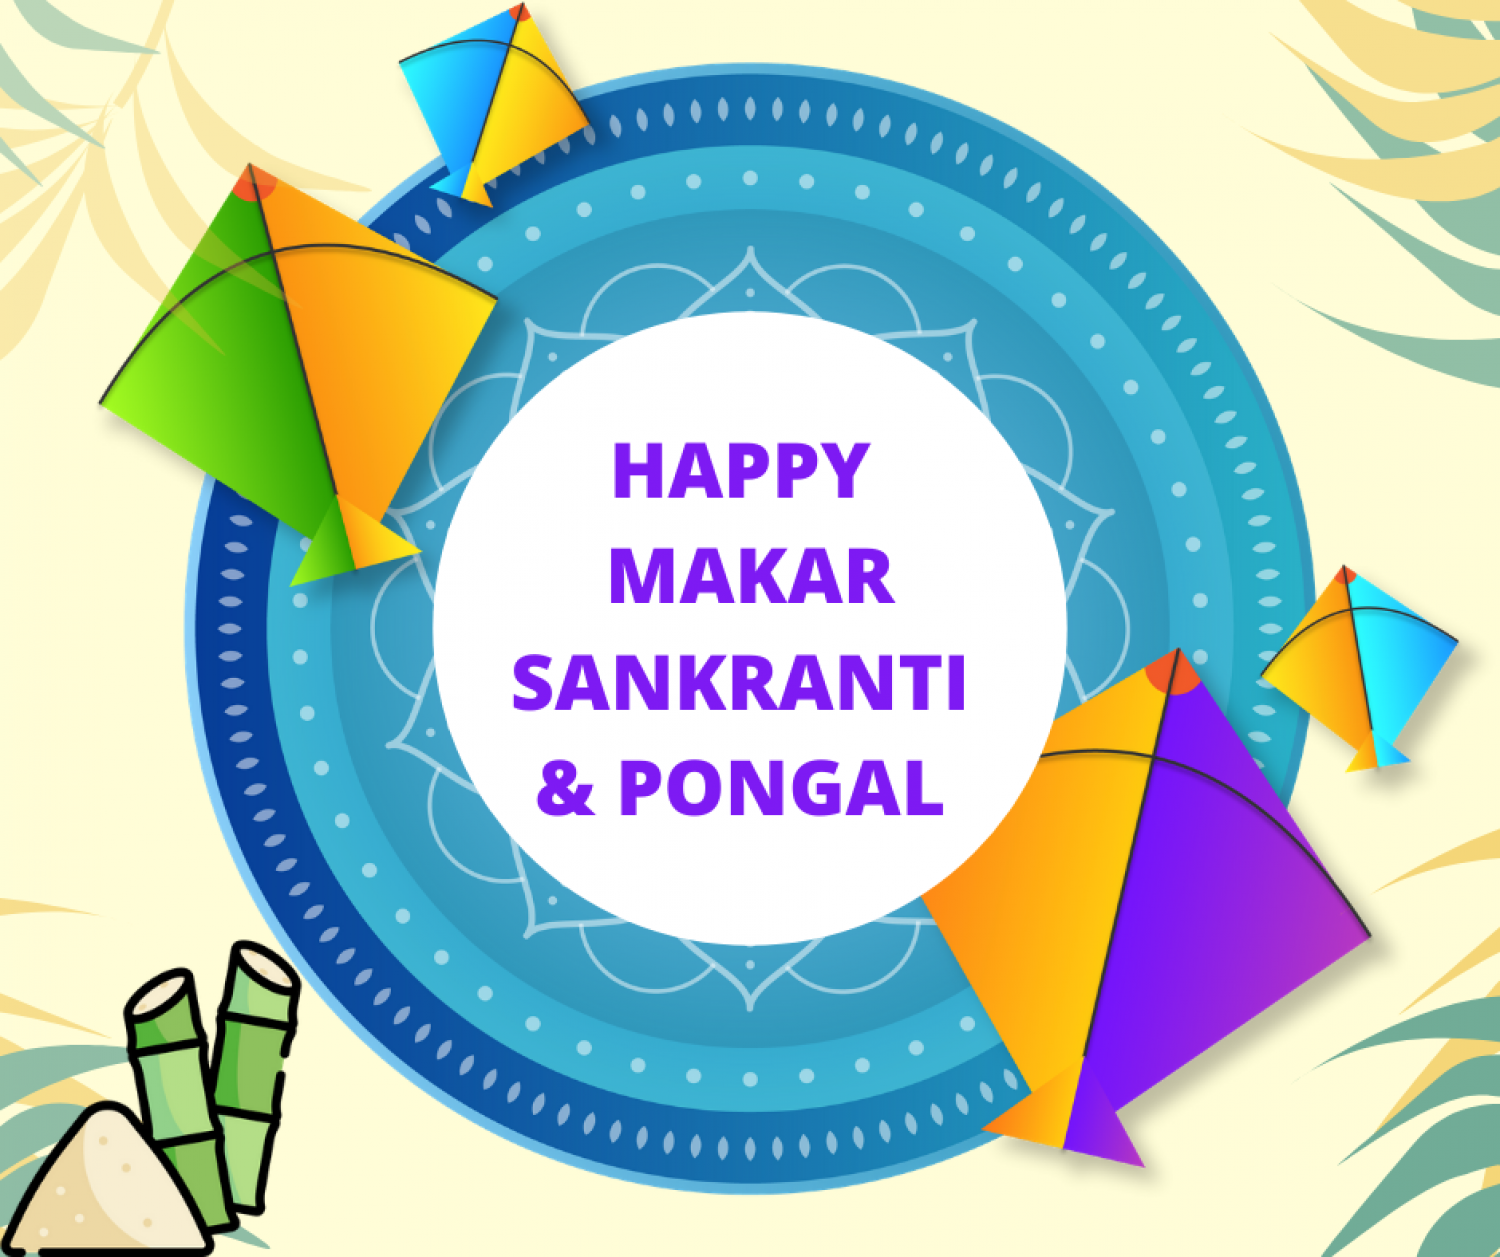 Happy Makar Sankranti & Pongal to all!  Infographic